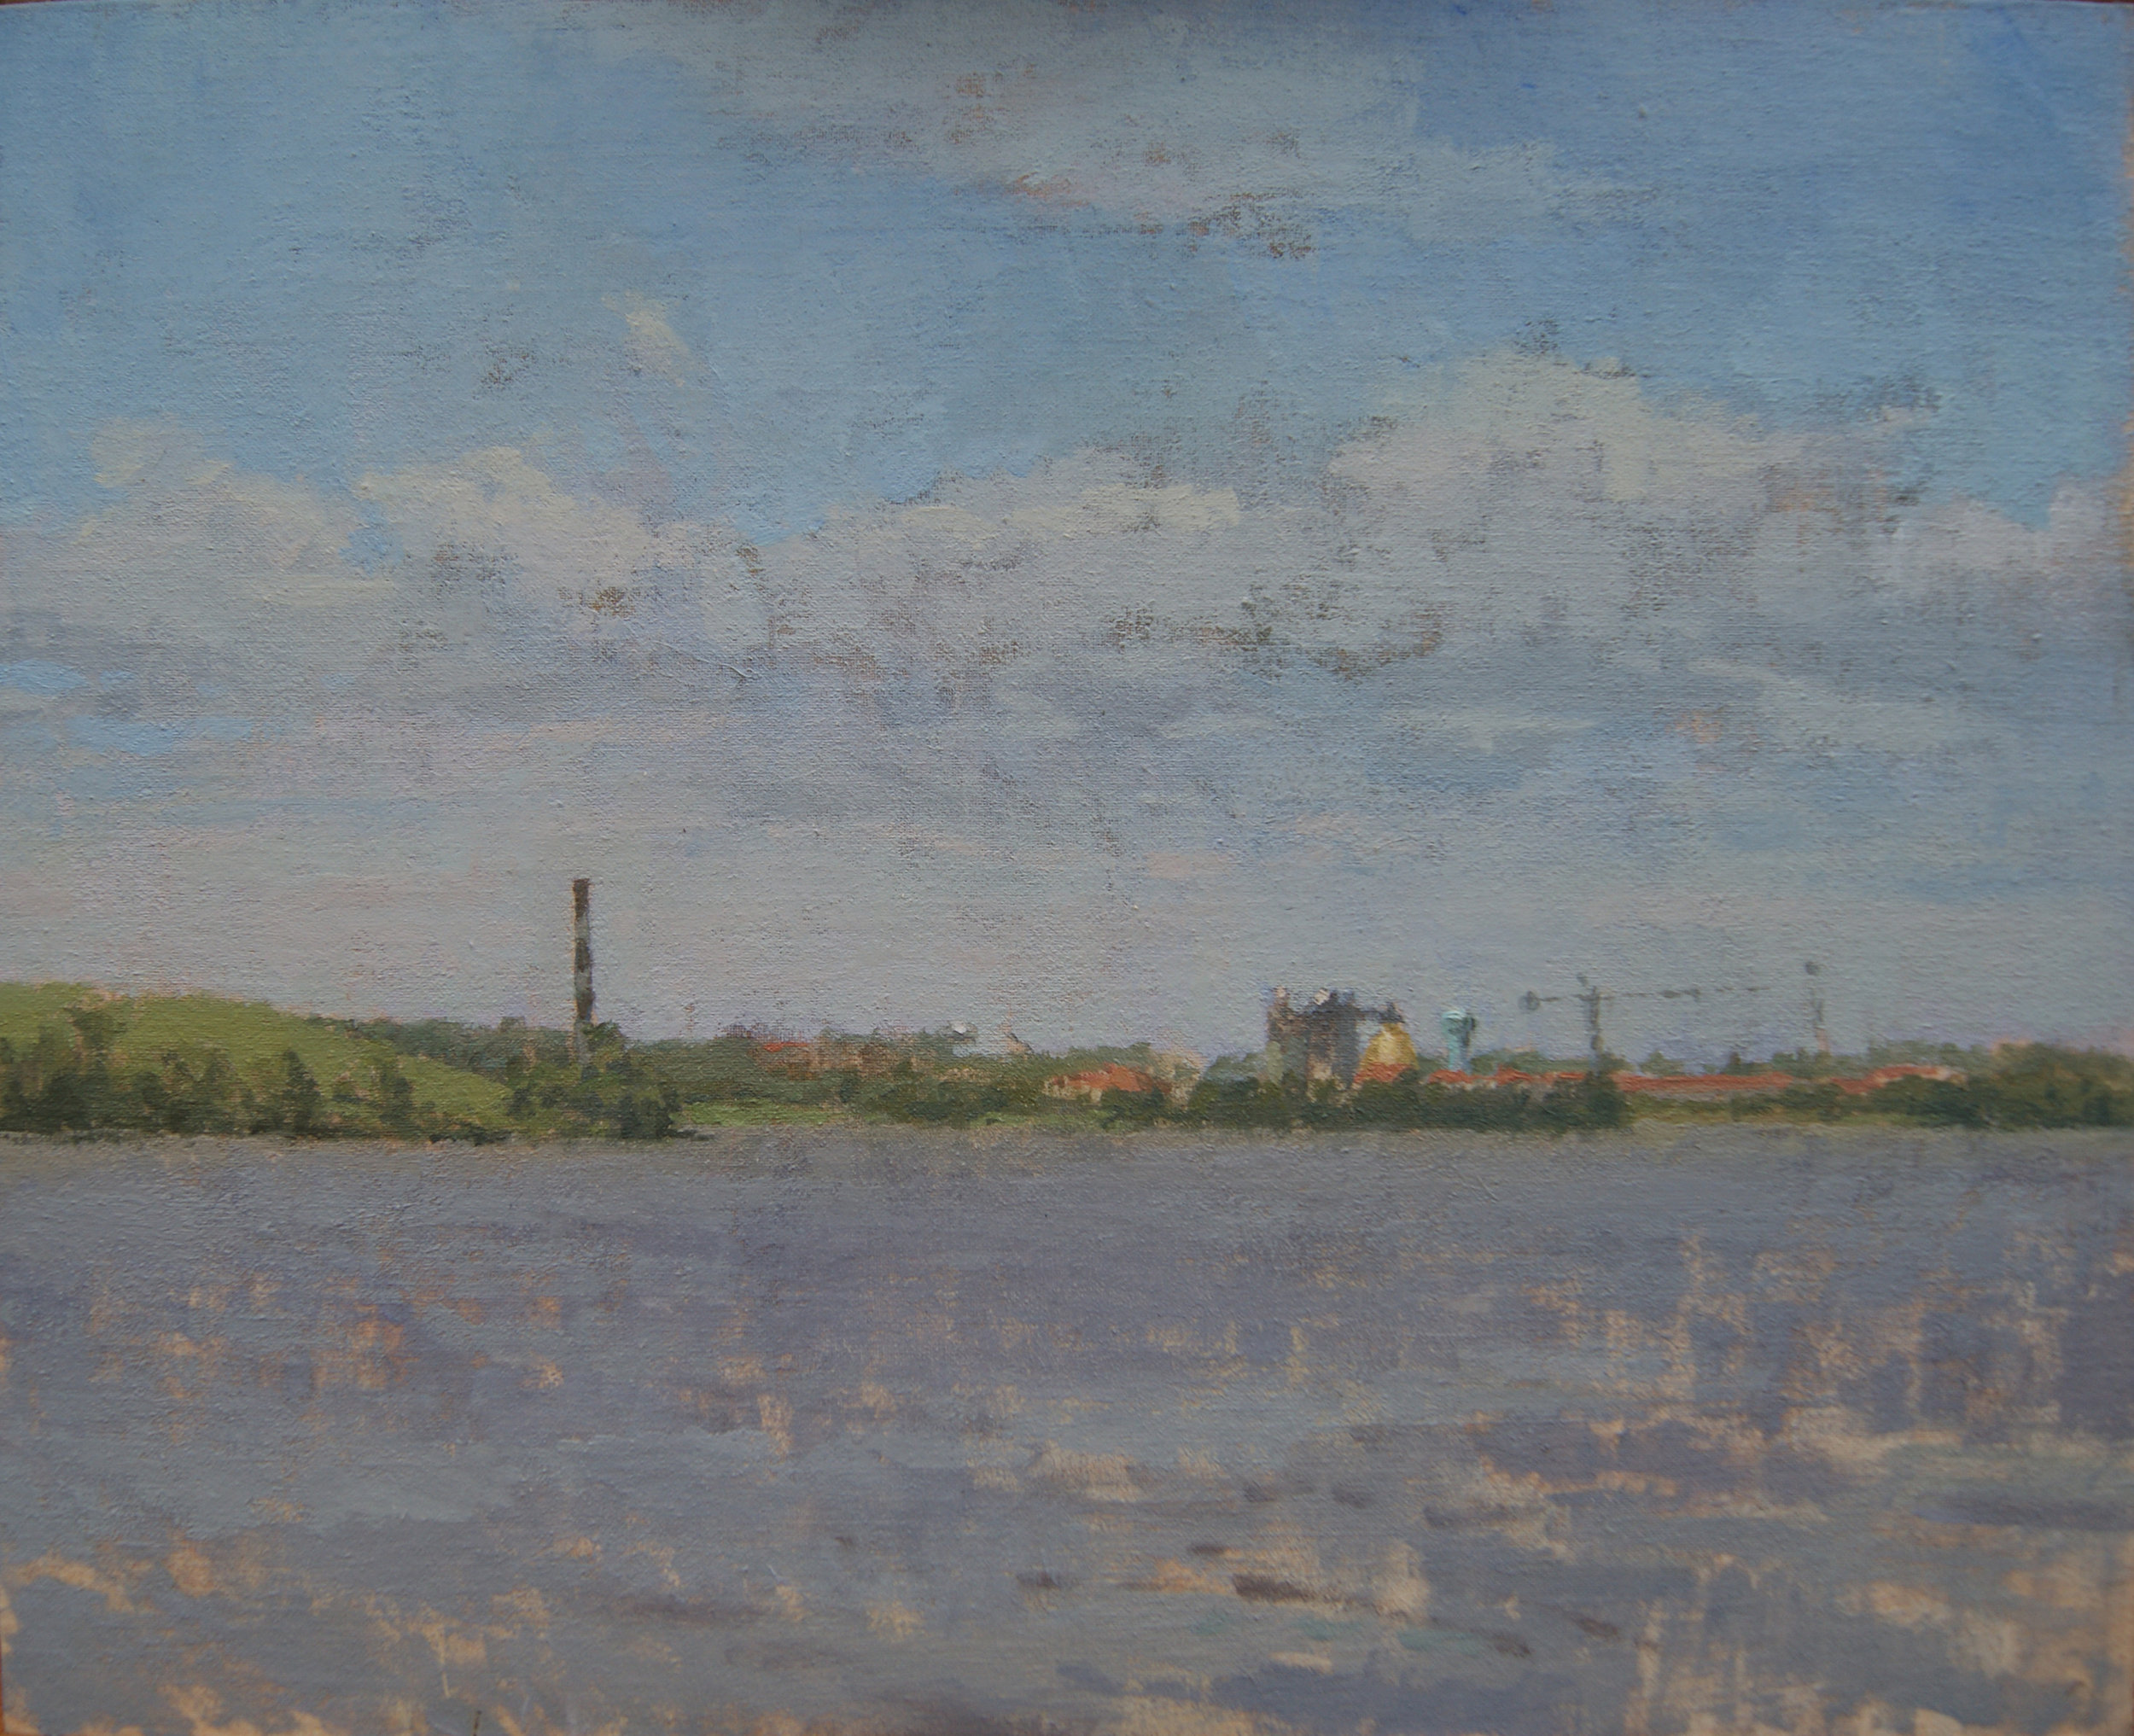 Dundulk Water Plant, Oil on Muslin on Panel, 8%22x10%22.JPG